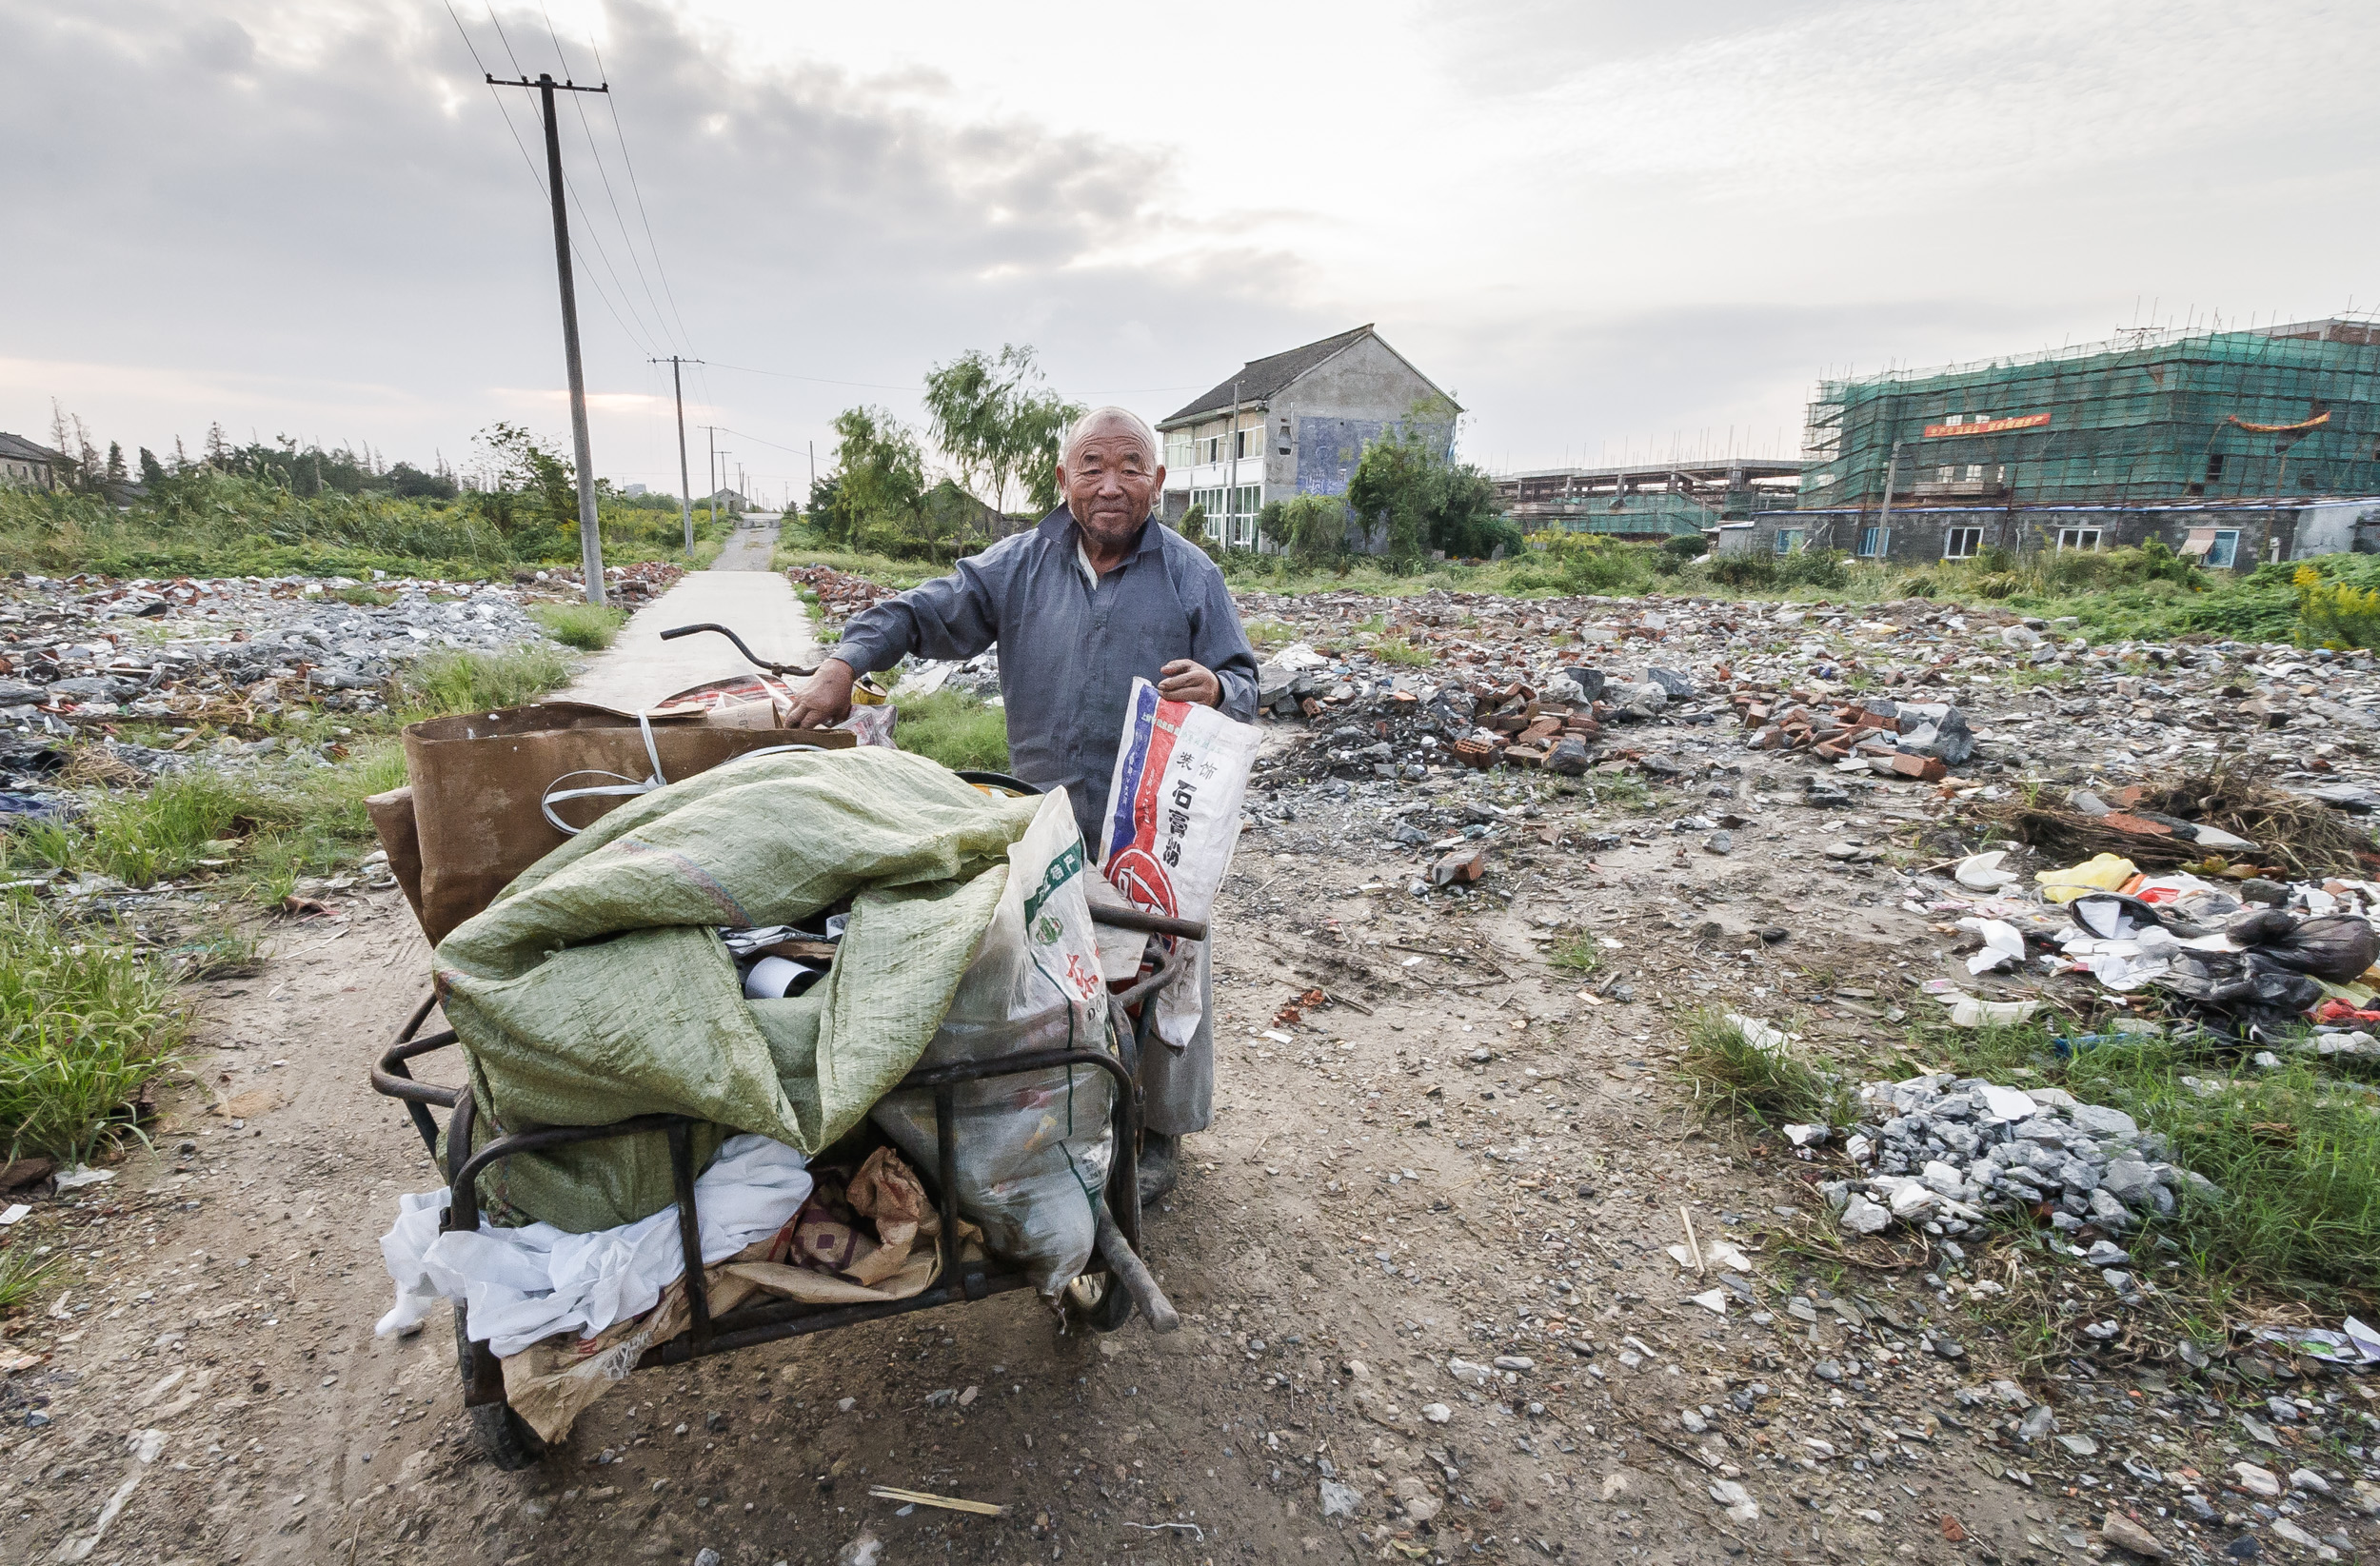 A man with a barrow collects recyclable material in a former housing area. Shanghai, China.